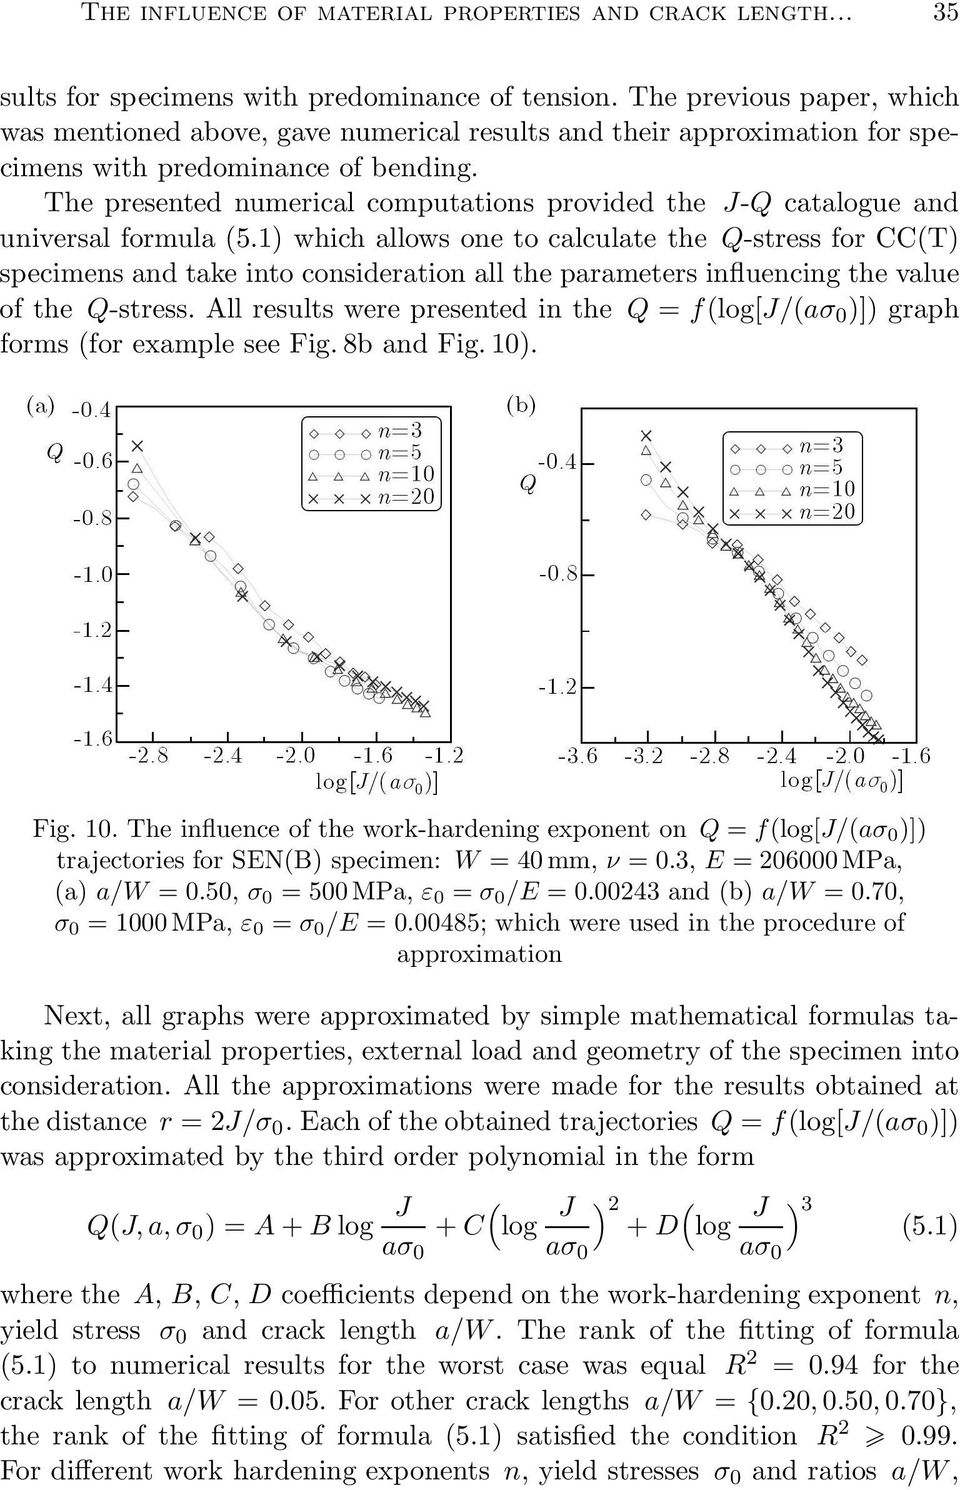 The presented numerical computations provided the J-Q catalogue and universal formula(5.